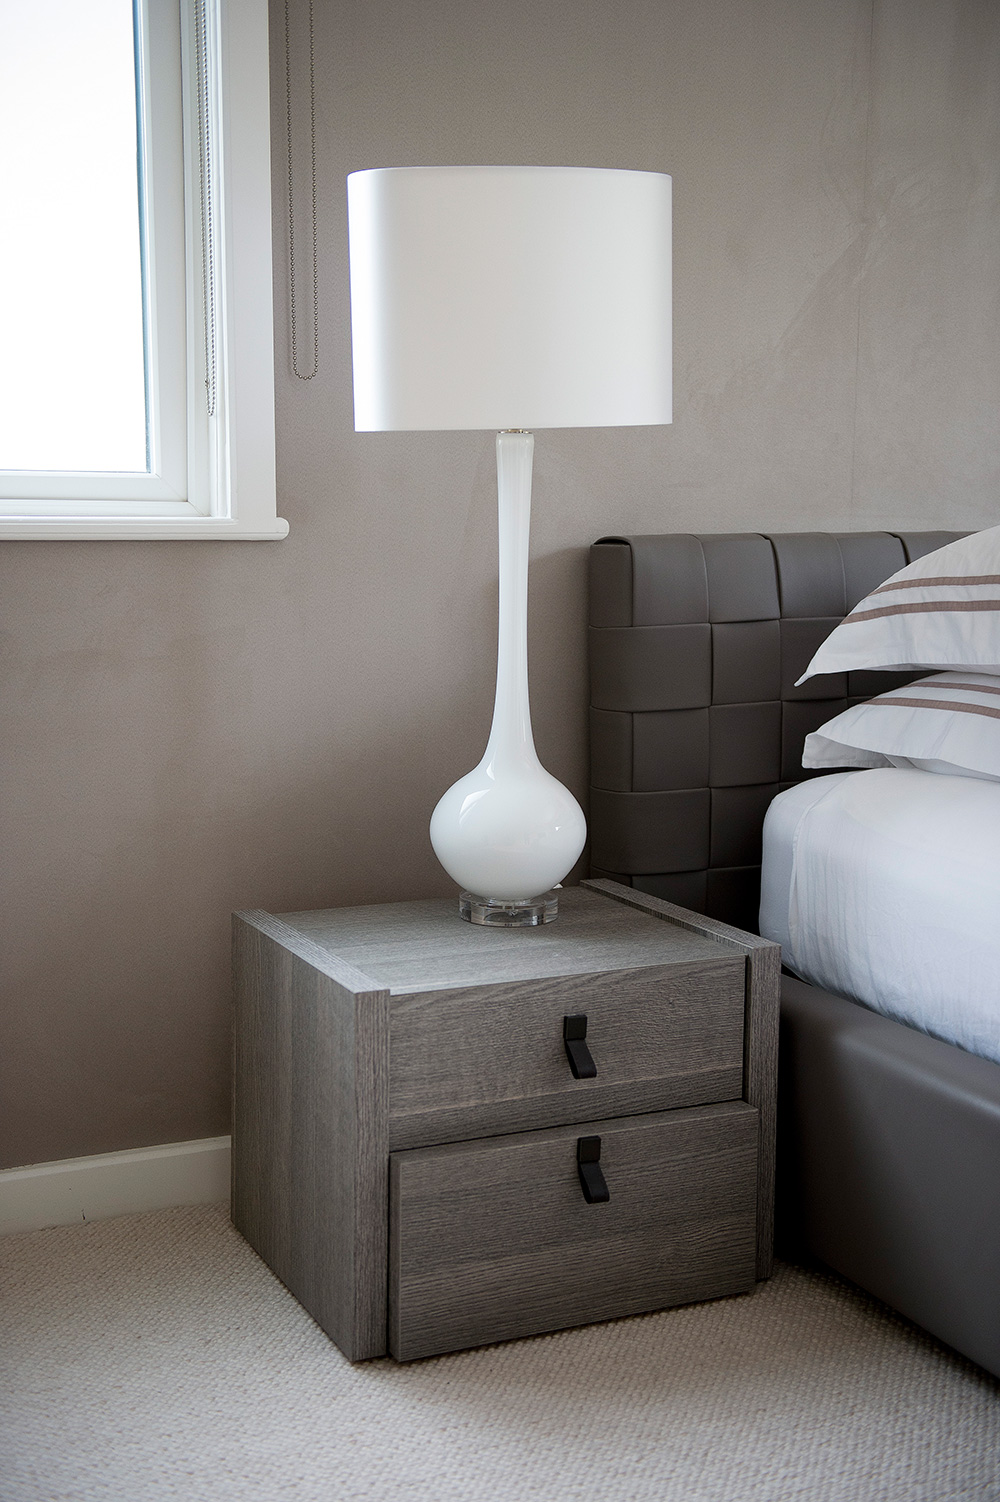 11-nikki-rees-bedside-table-luxury-bedroominterior-interior-design-wimbledon-london-surrey